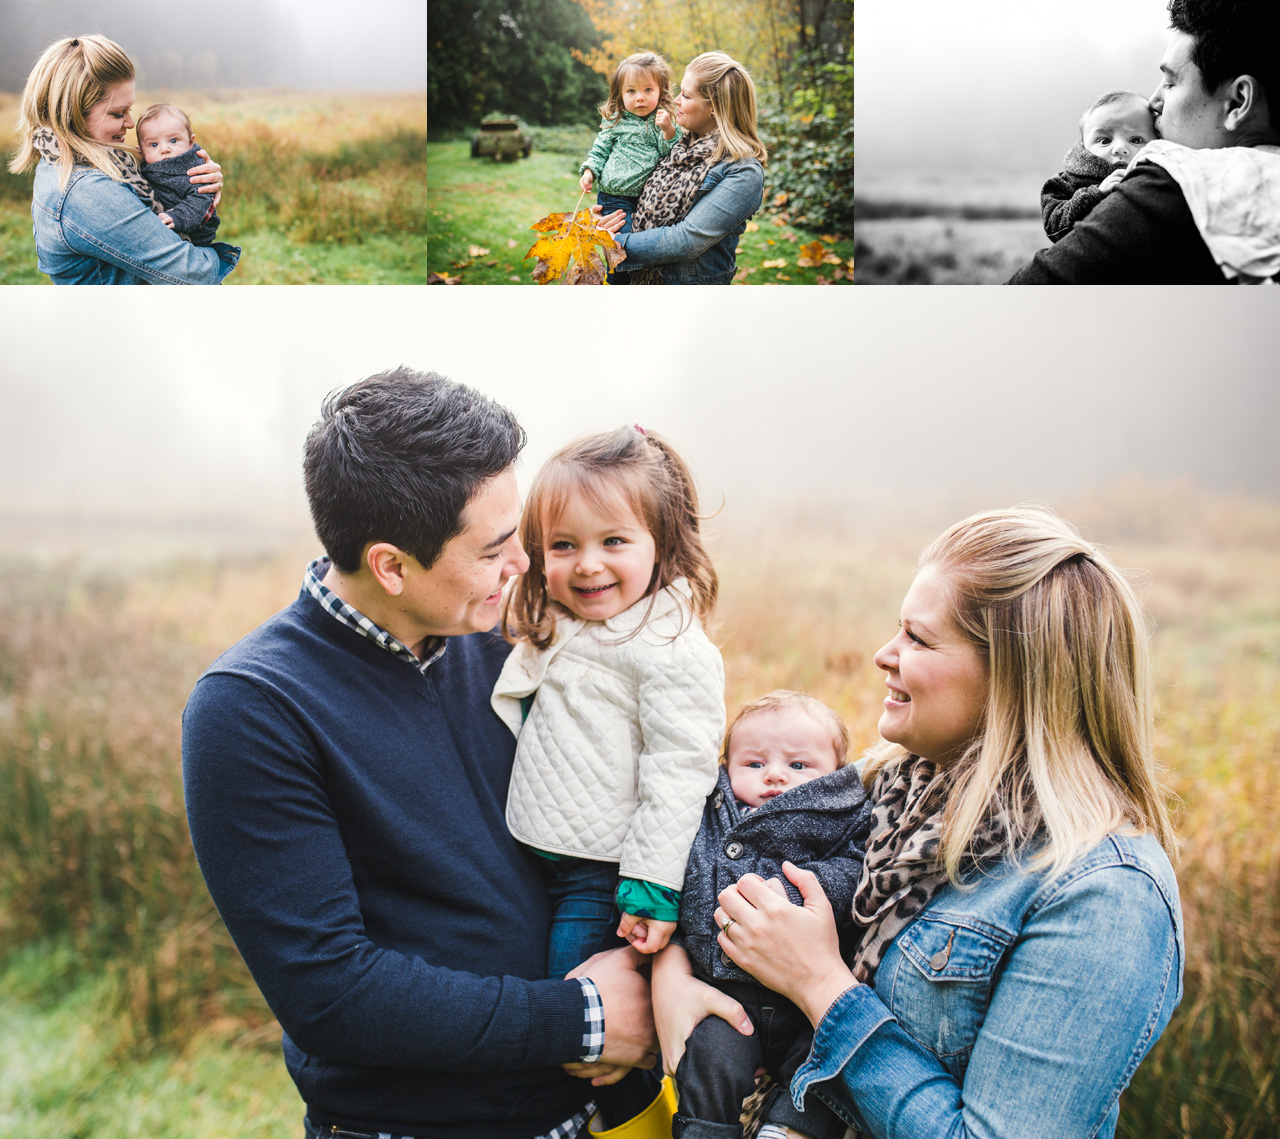 Vancouver Newborn Photographer | Felicia Chang Photography